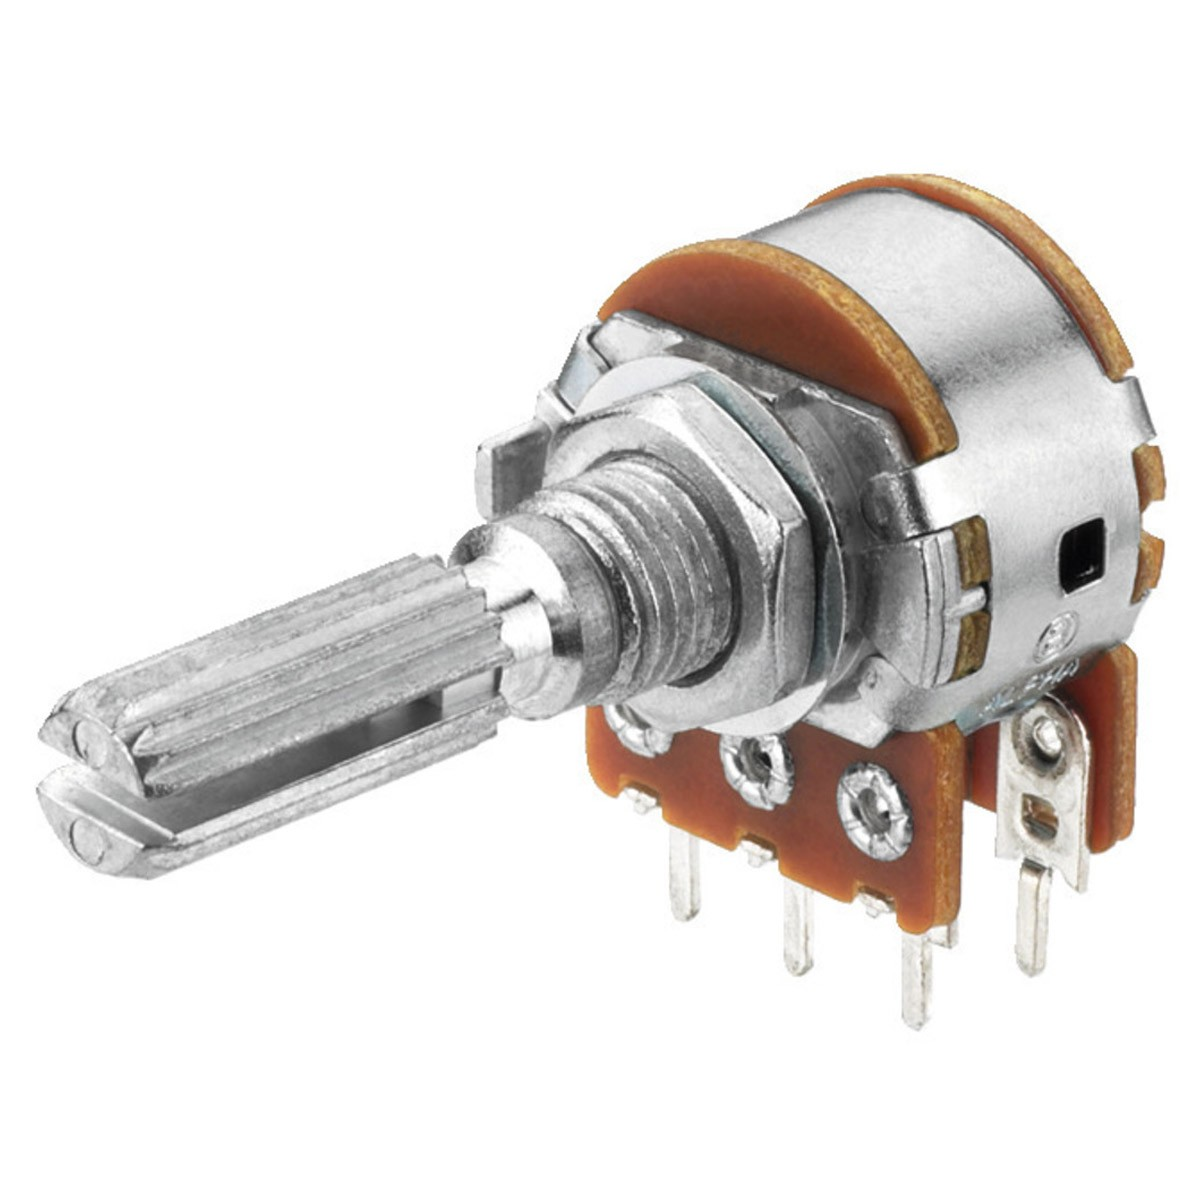 VRB-101S100 Potentiomètre Stéréo Point Central 100K Ohm